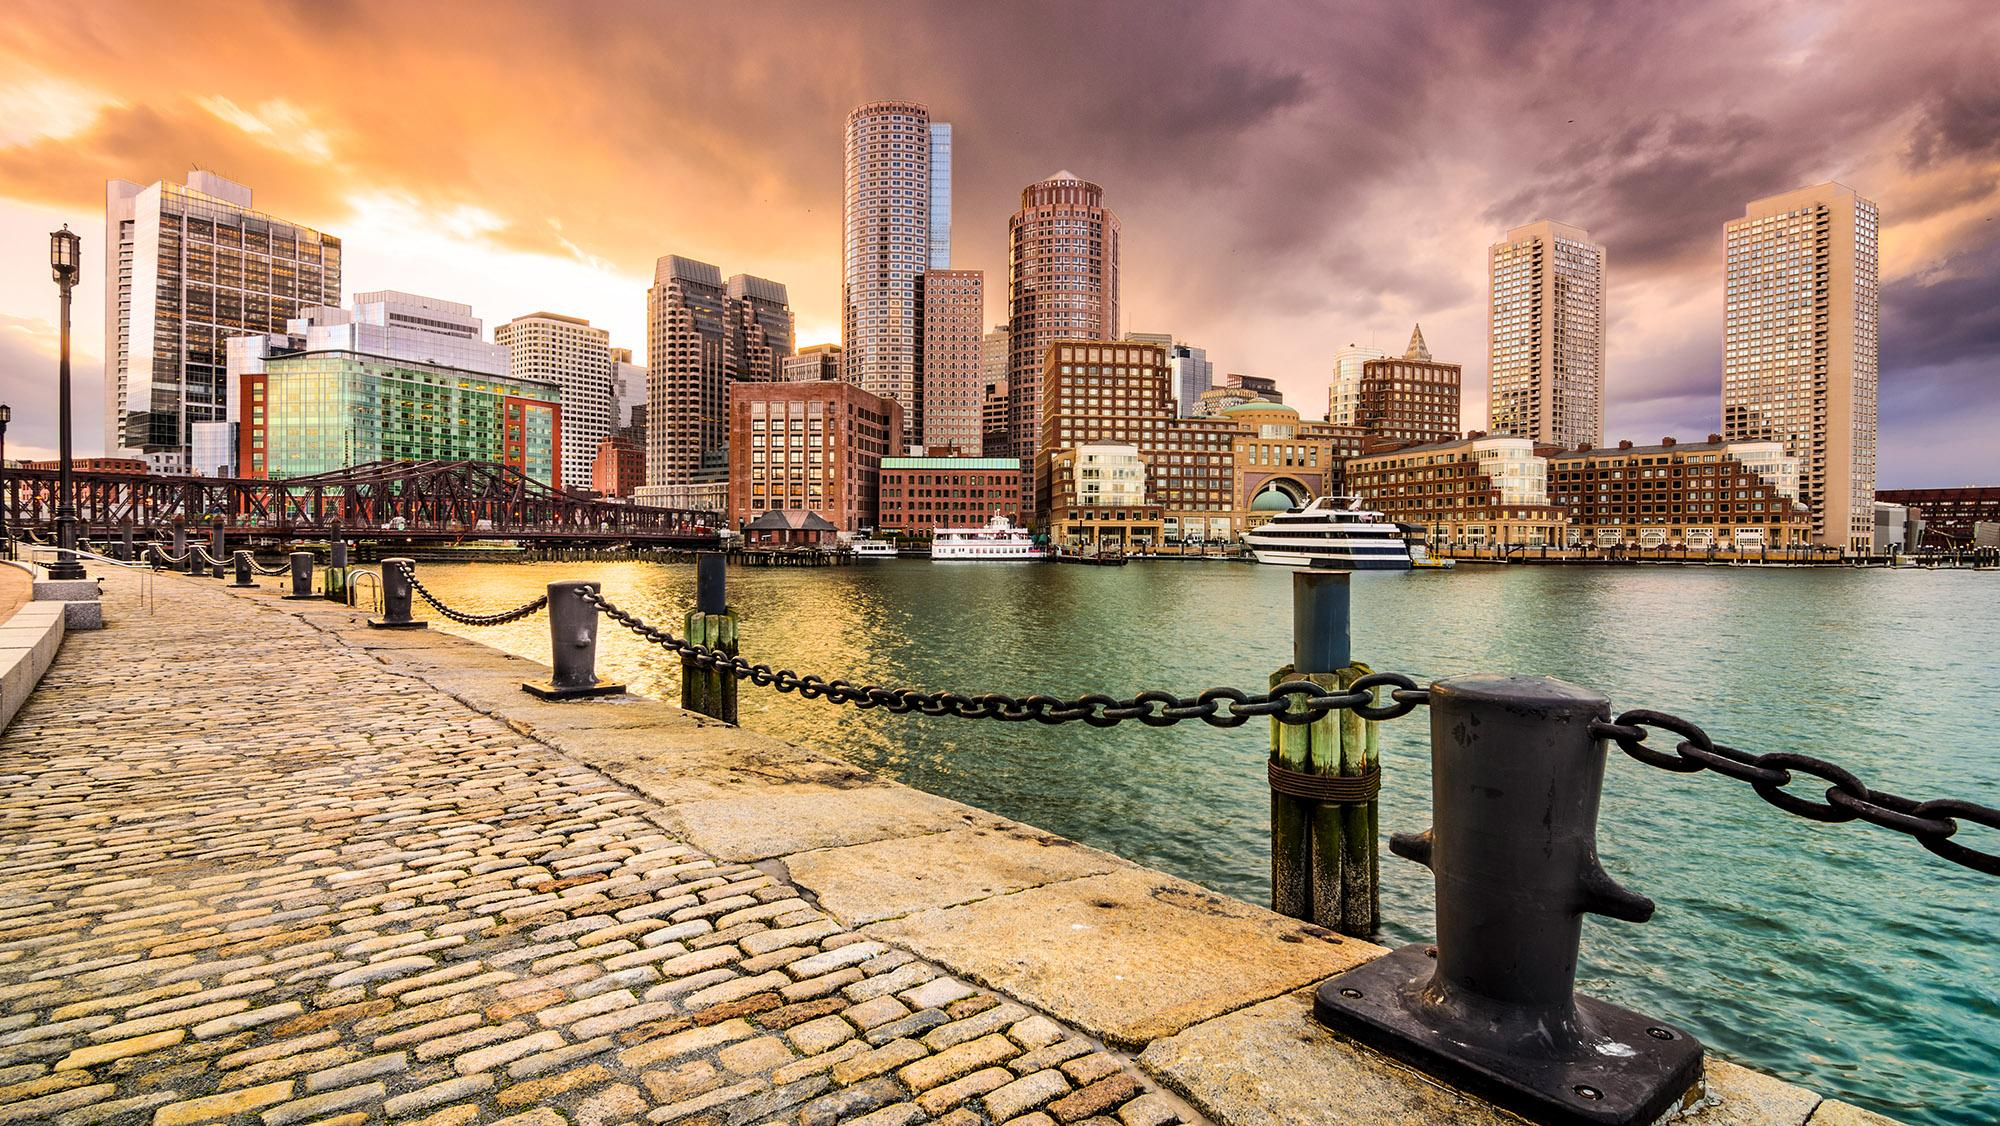 city view of boston, massachusetts